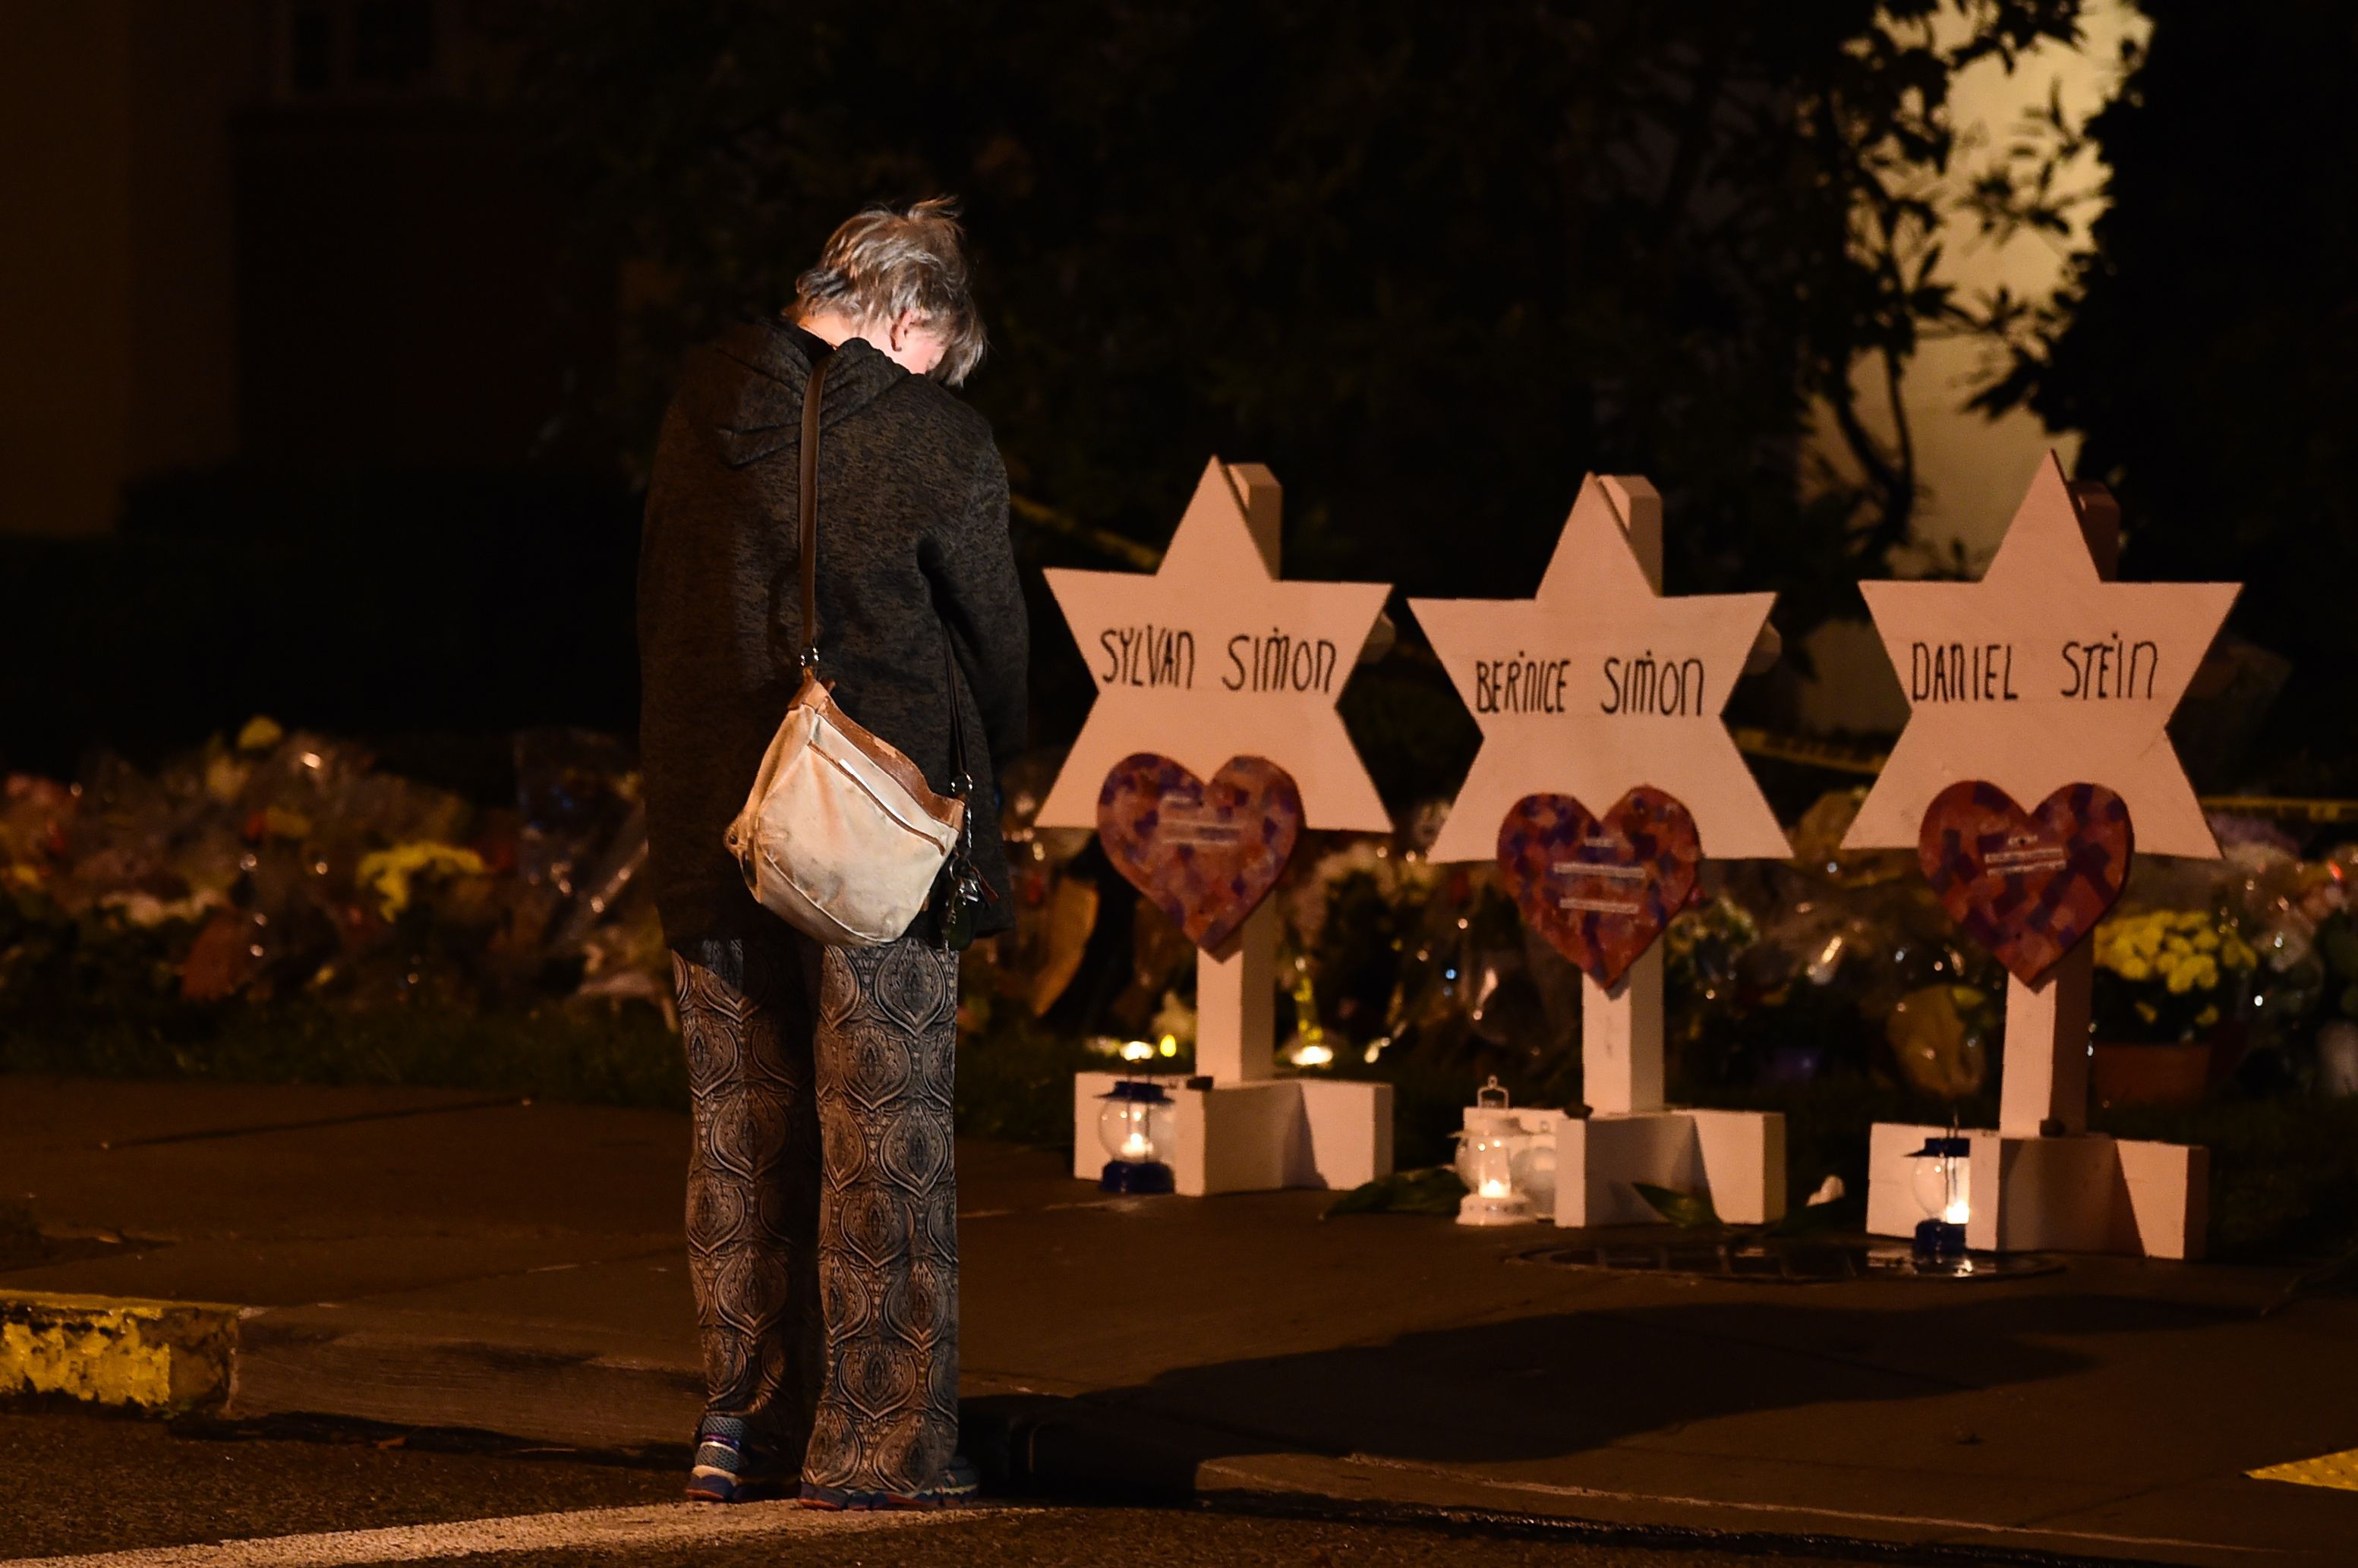 A woman bows her head in front of a memorial on October 28, 2018, at the Tree of Life synagogue after a shooting there left 11 people dead in the Squirrel Hill neighborhood of Pittsburgh on October 27. (BRENDAN SMIALOWSKI/AFP/Getty Images)